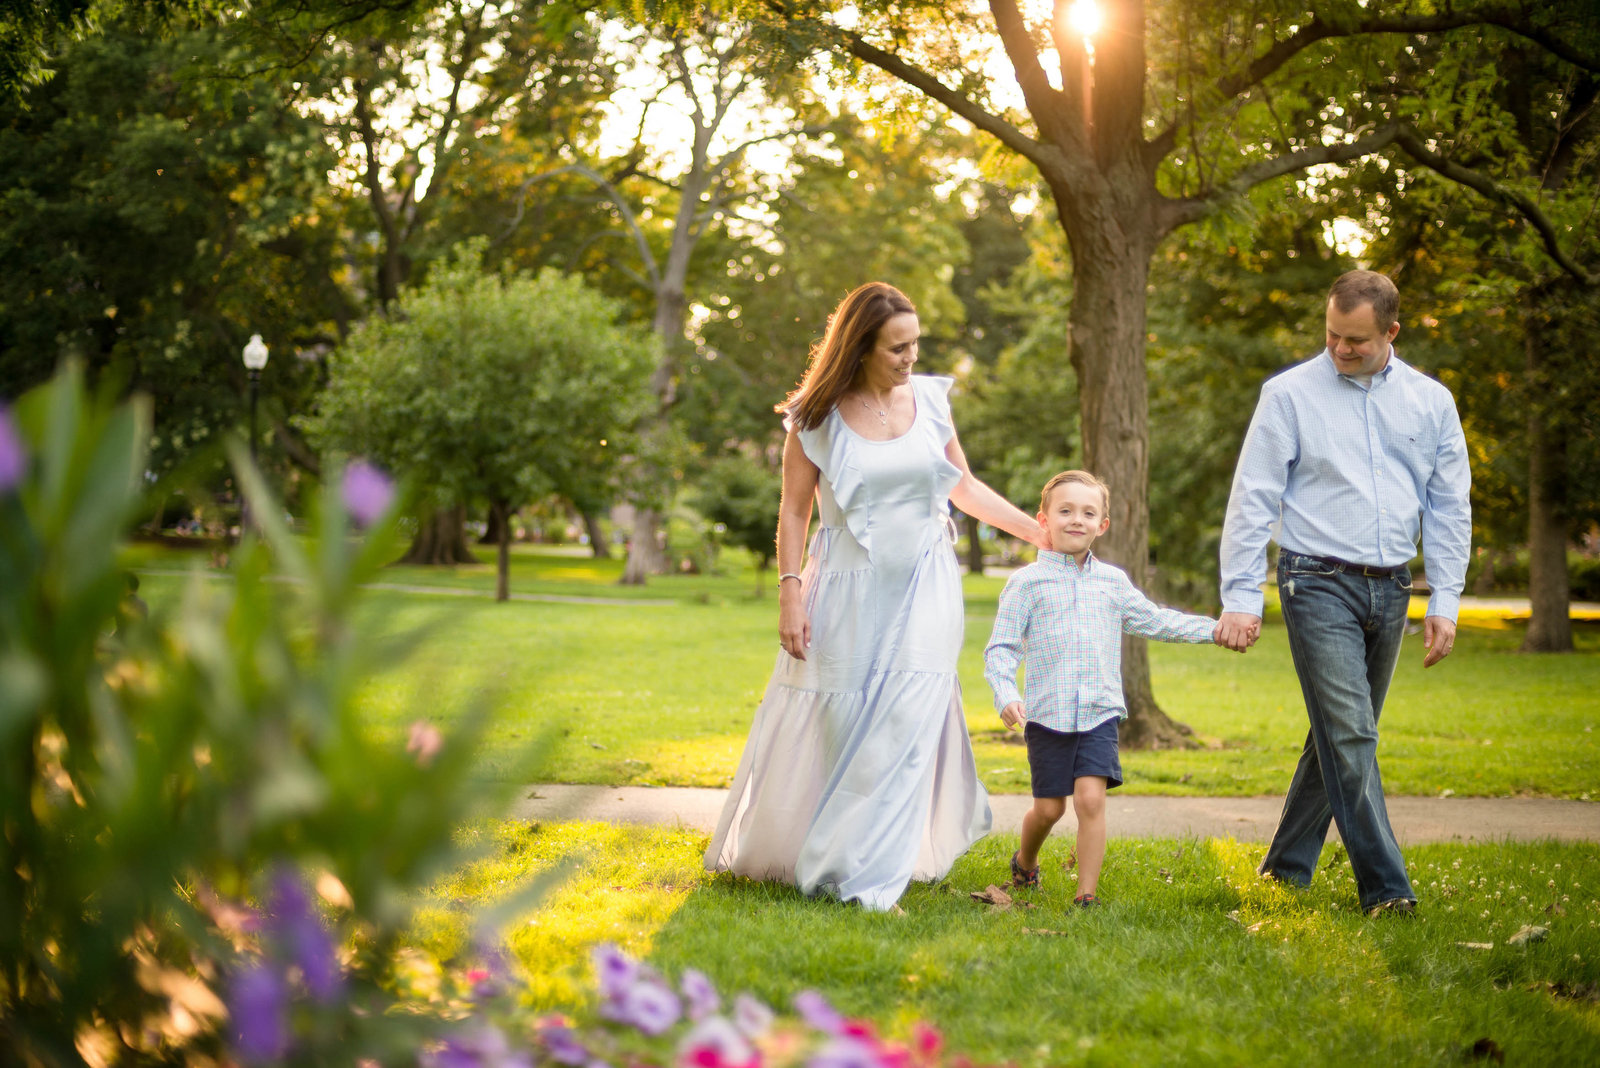 Boston-Family-Photographer-Public-Gardens-Session-4